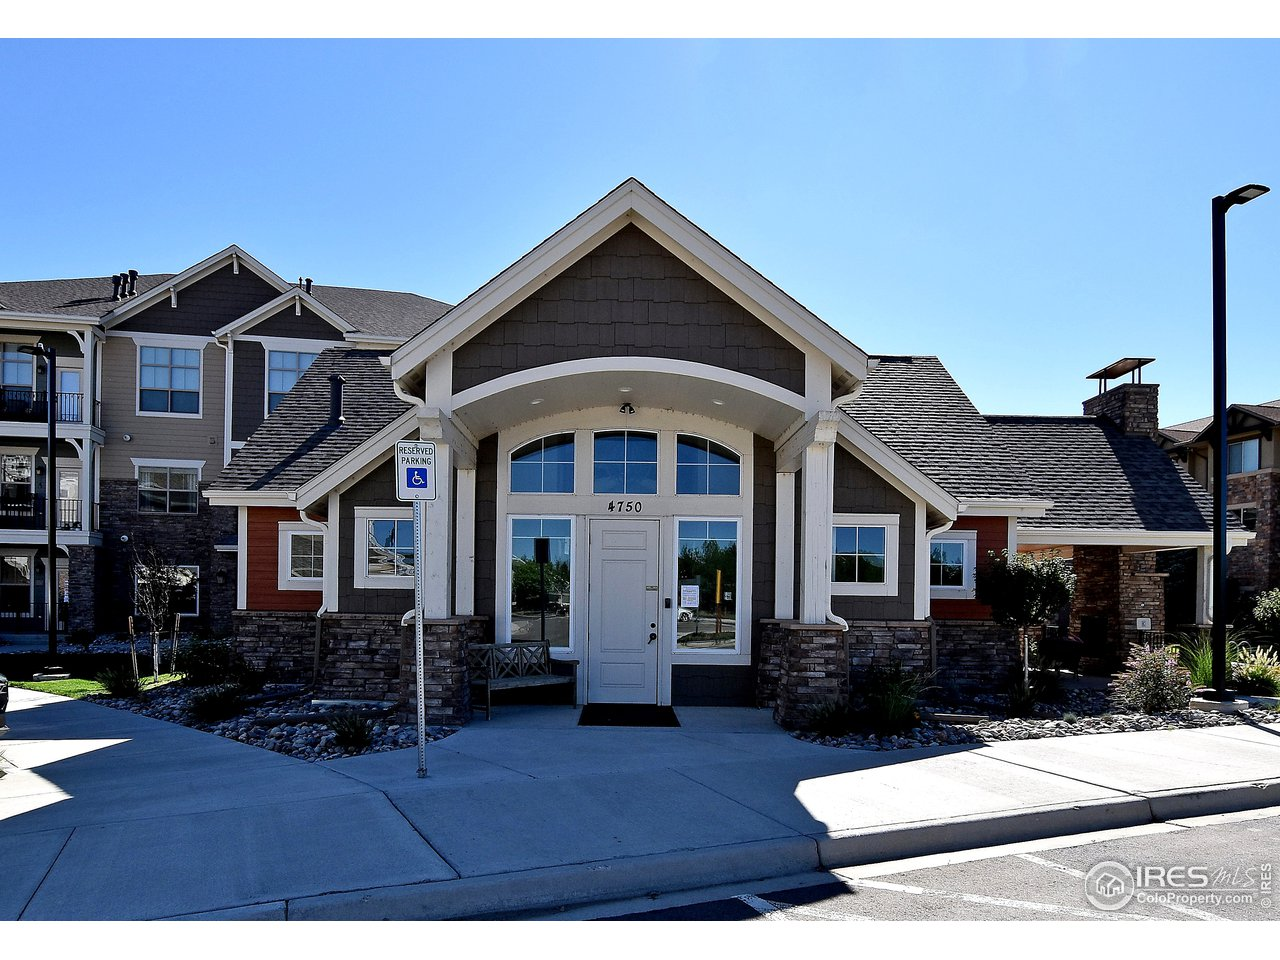 Clubhouse, gym all included in your HOA dues!